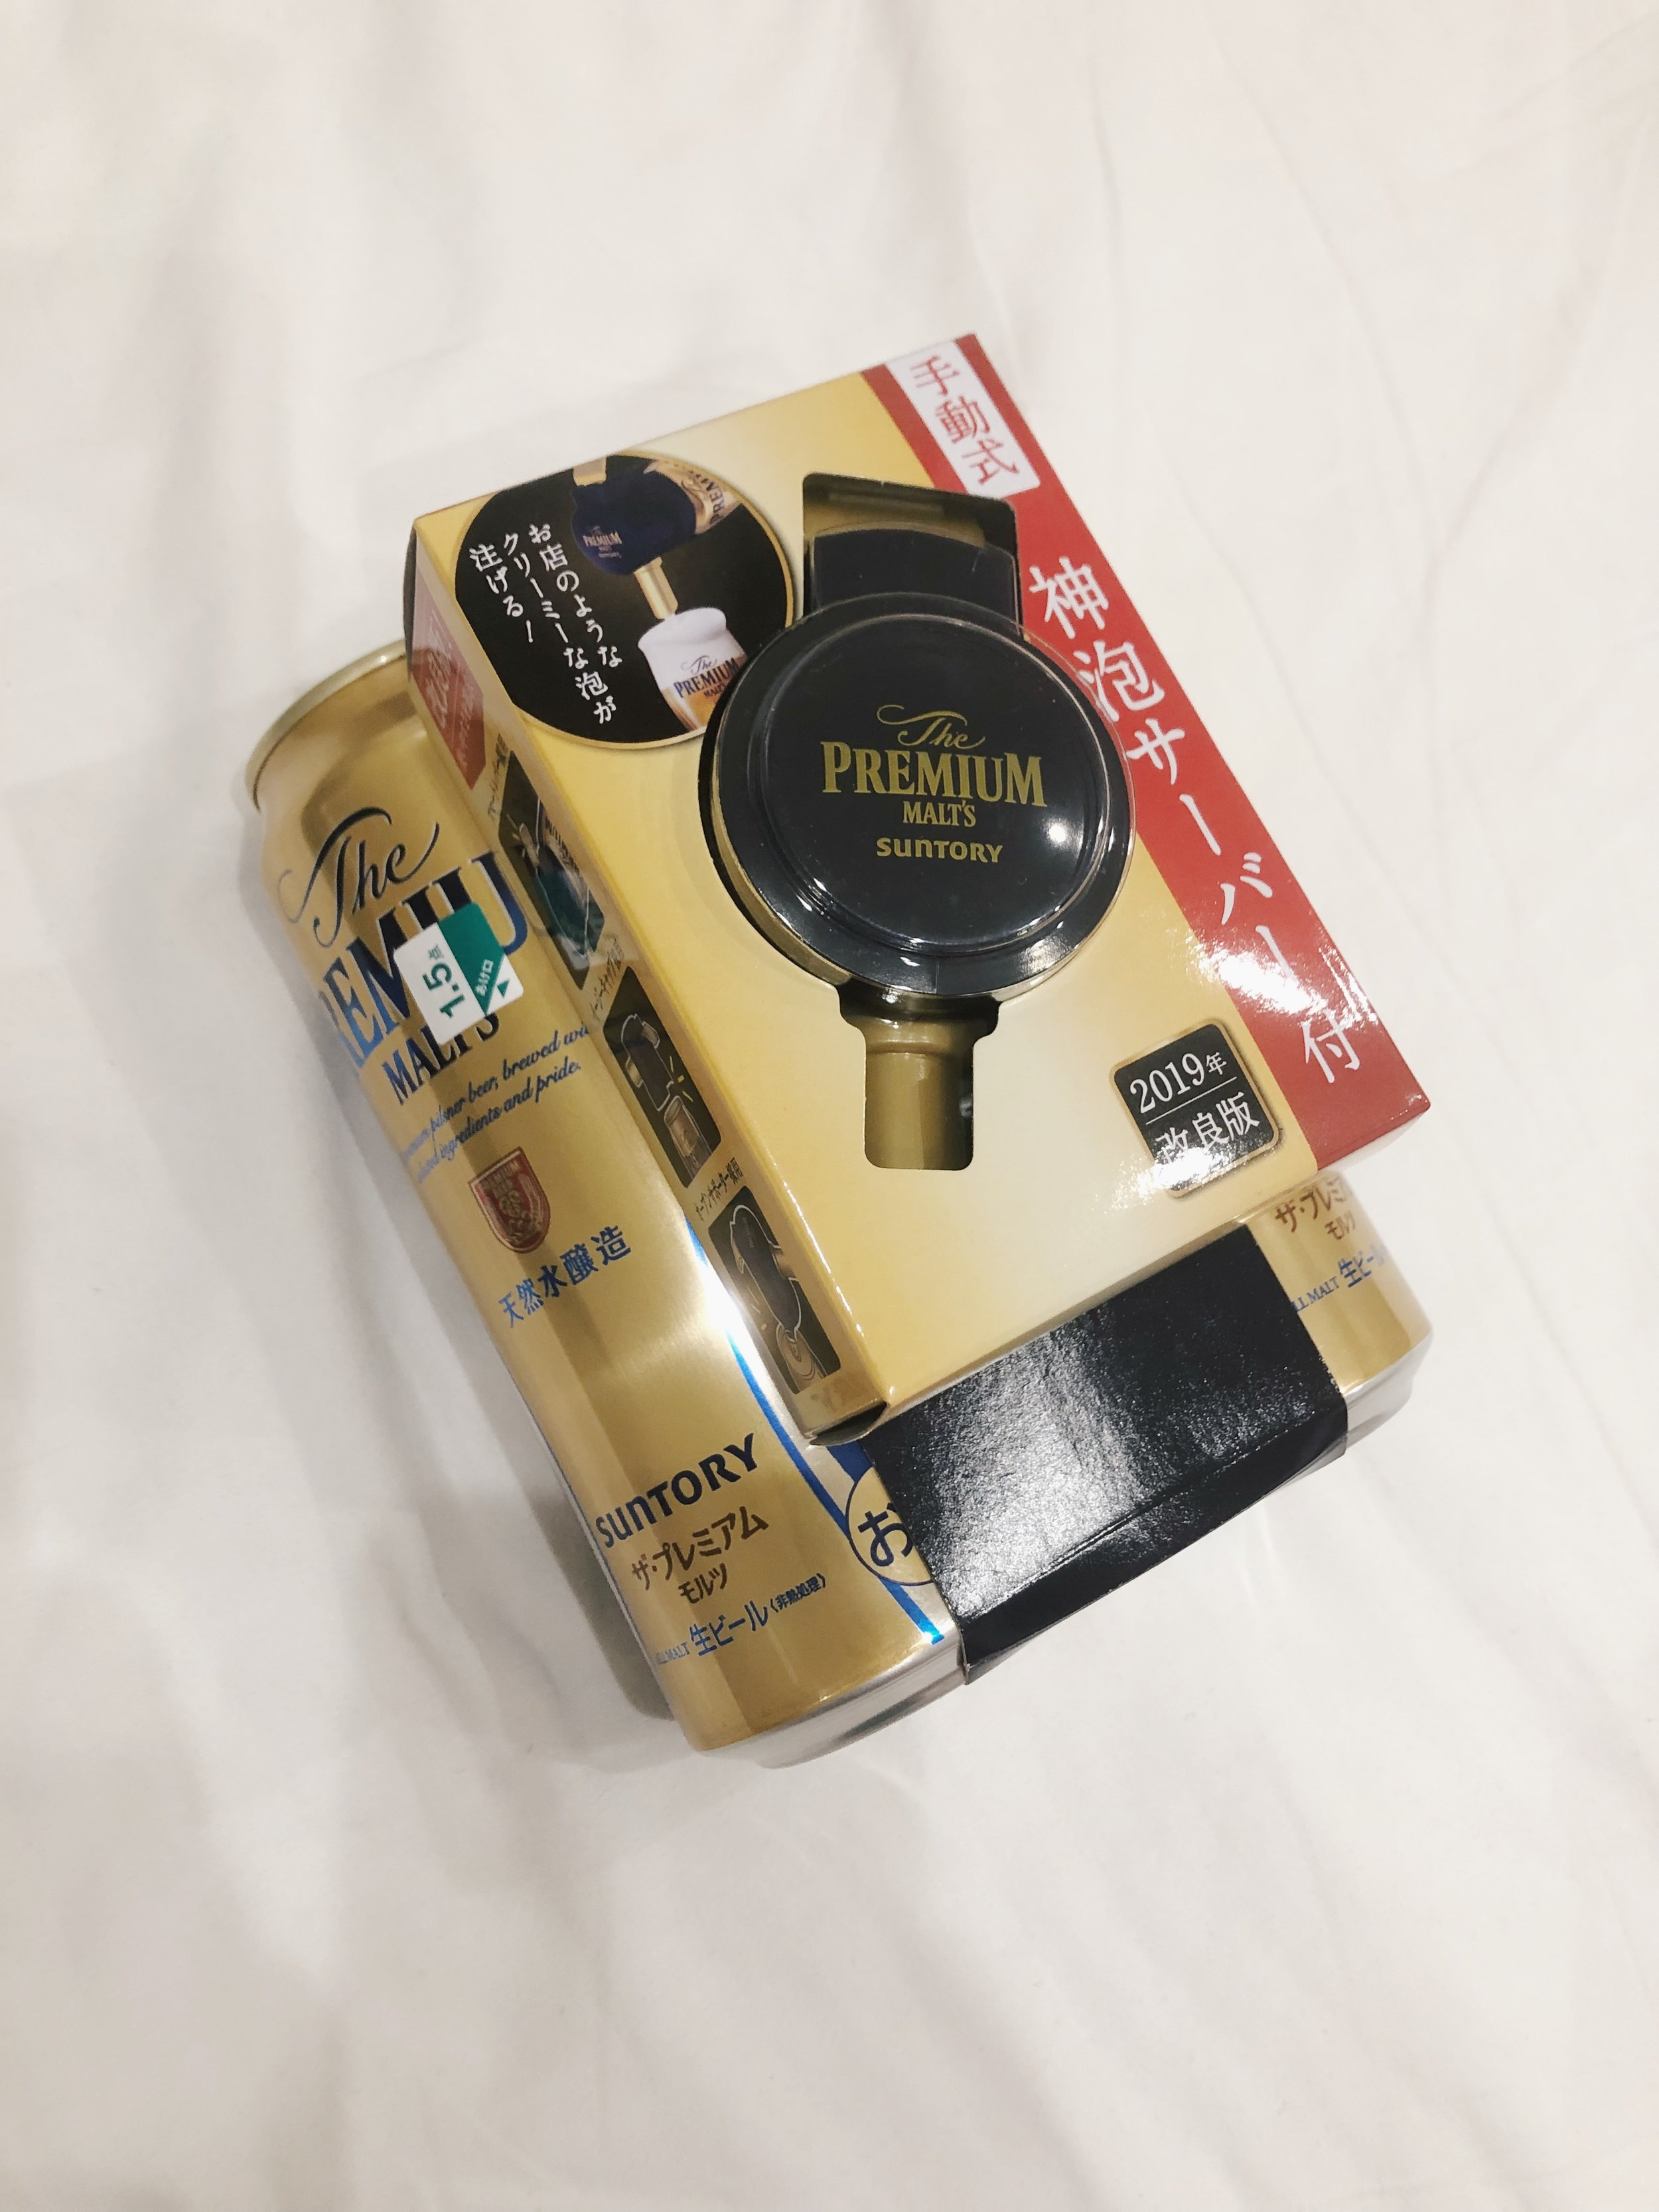 Suntory can tap promo gift.